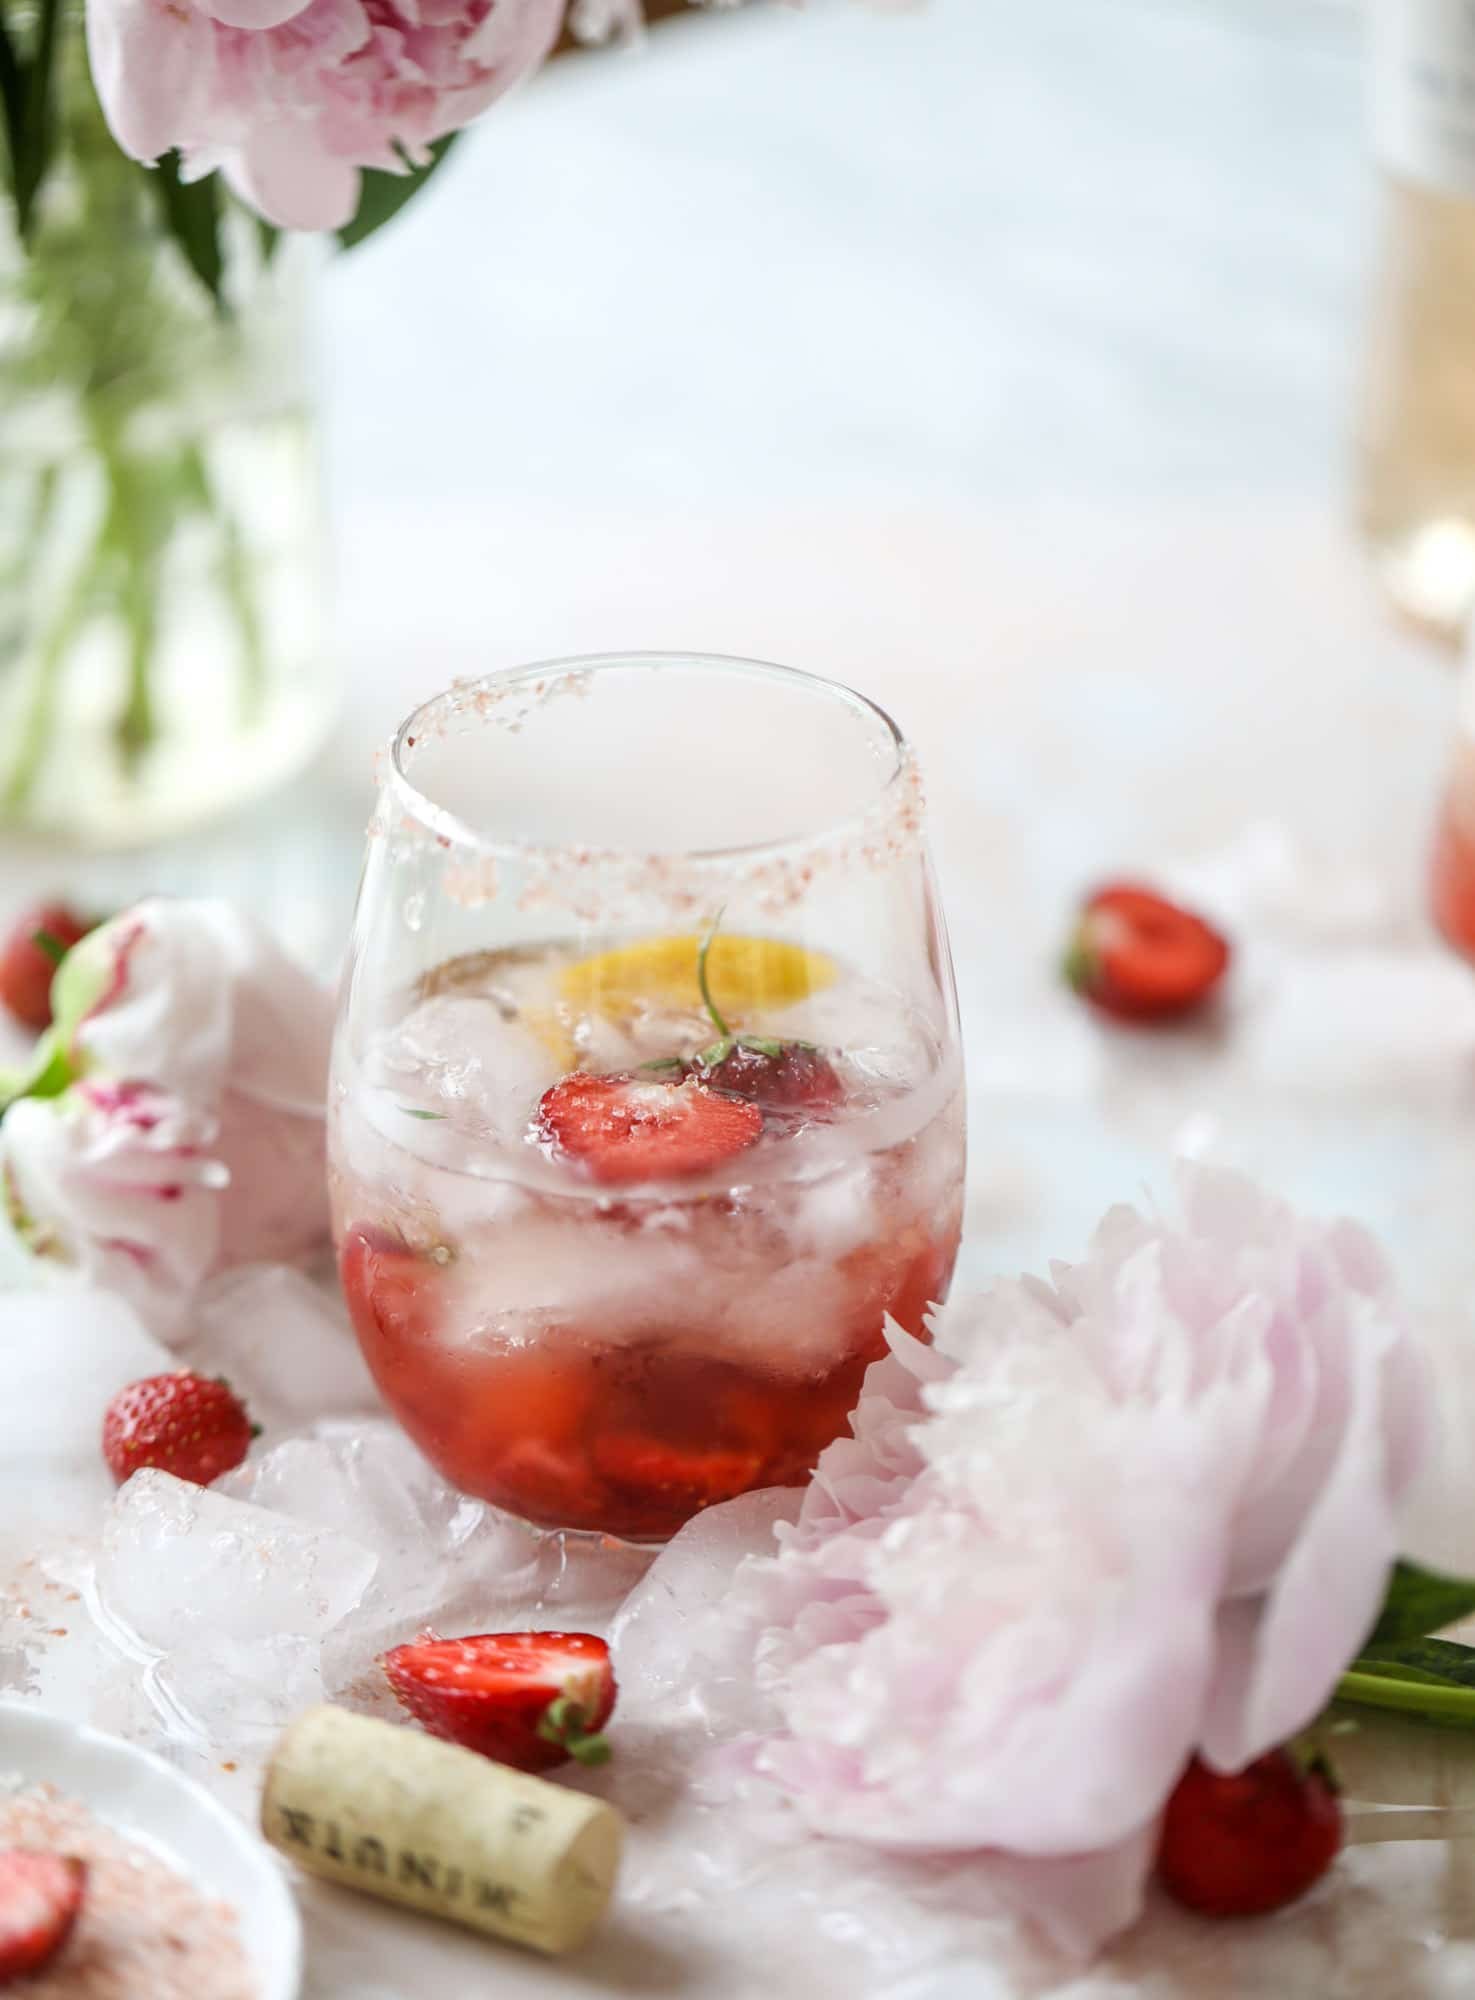 This tequila rosé spritz cocktail is perfectly refreshing for hot summer nights. A mix between a margarita and spritzer, this starts with muddled strawberries and honey, a shot of tequila and is topped off with your favorite rosé wine! I howsweeteats.com #tequila #rosé #wine #spritz #cocktail #strawberries